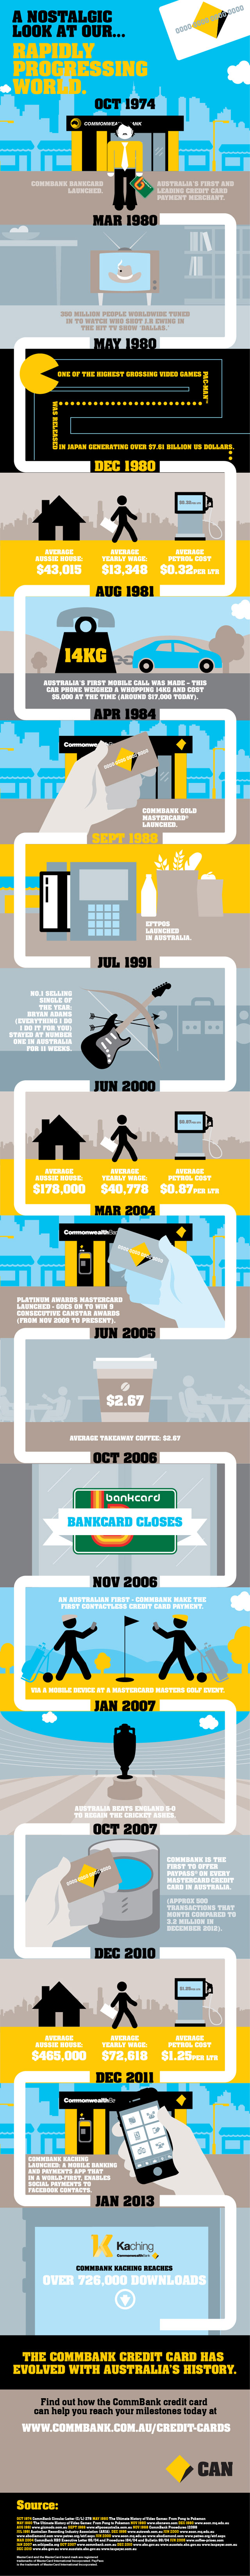 Credit card history - Commonwealth Bank